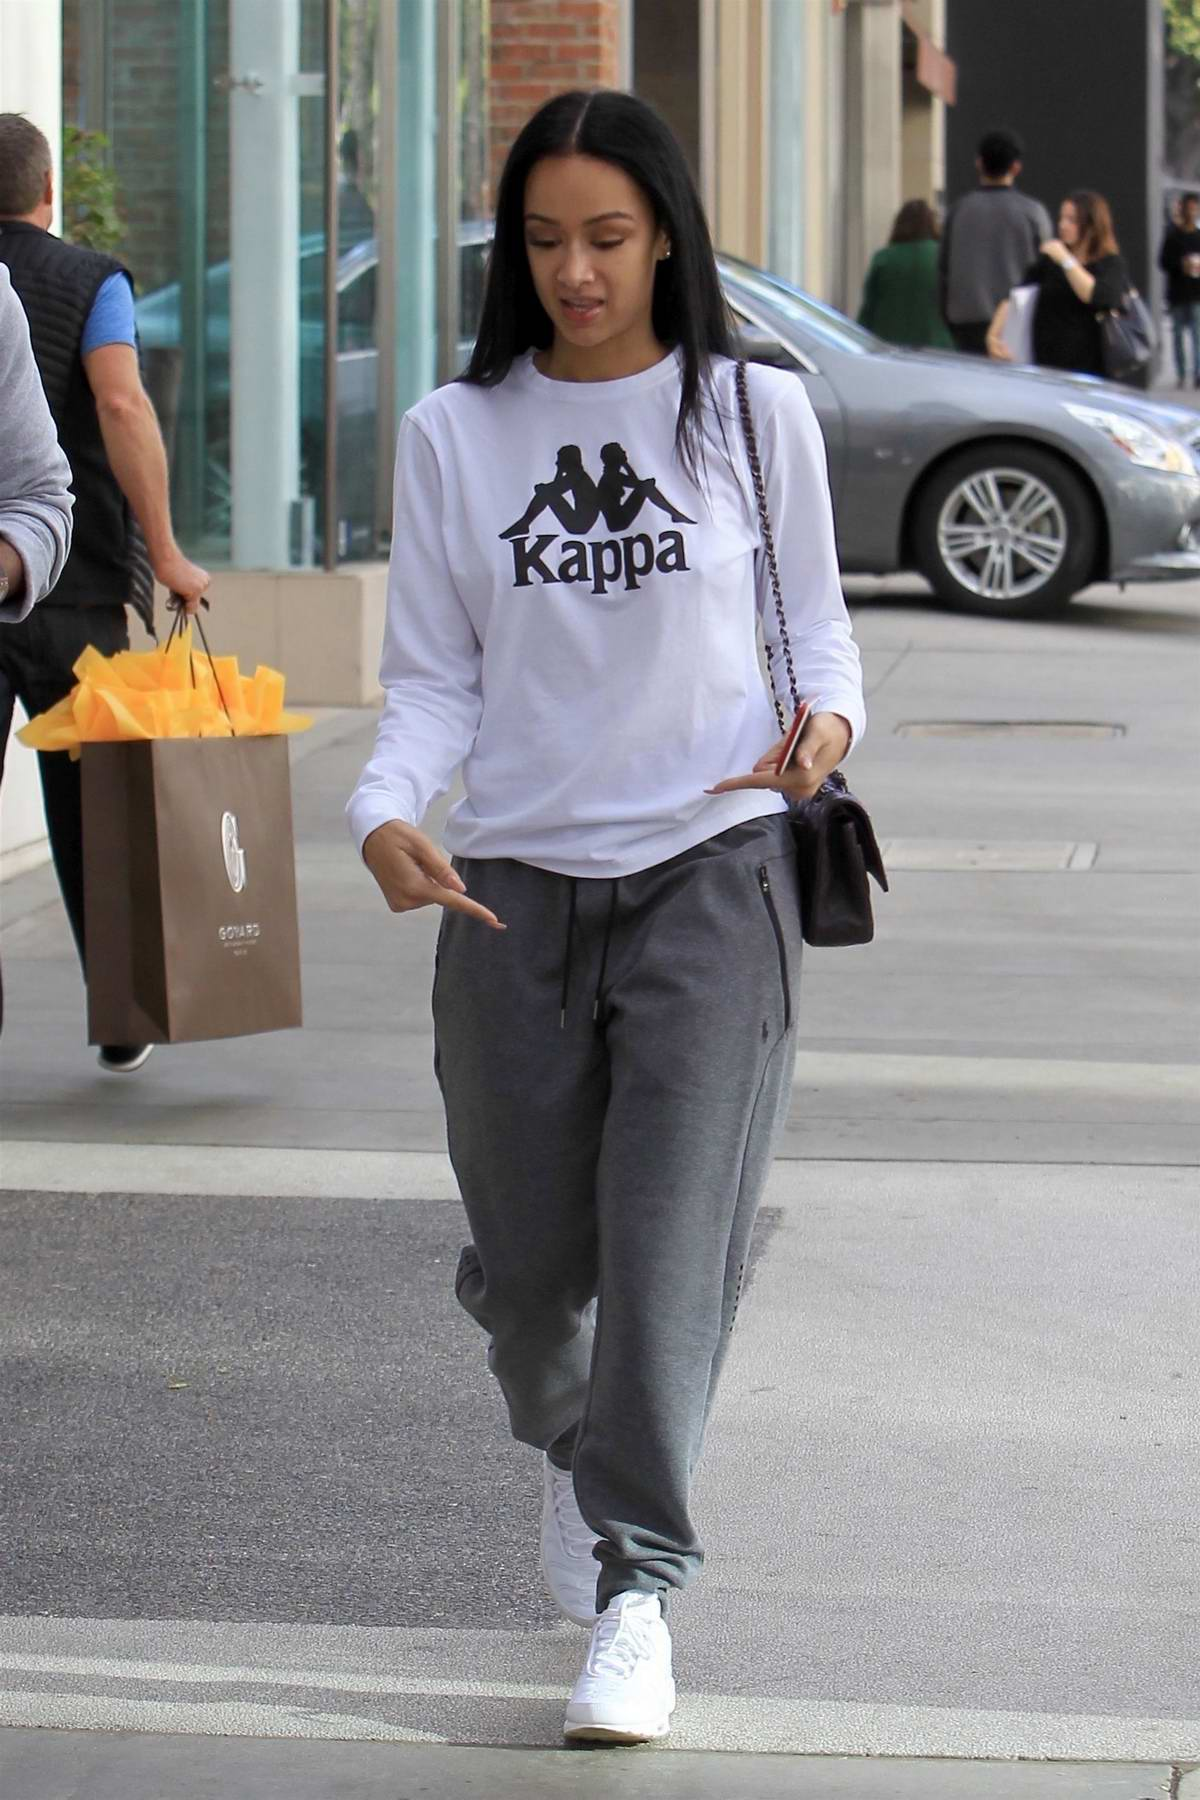 Draya Michele and Orlando Scandrick go Christmas shopping together in Beverly Hills, Los Angeles